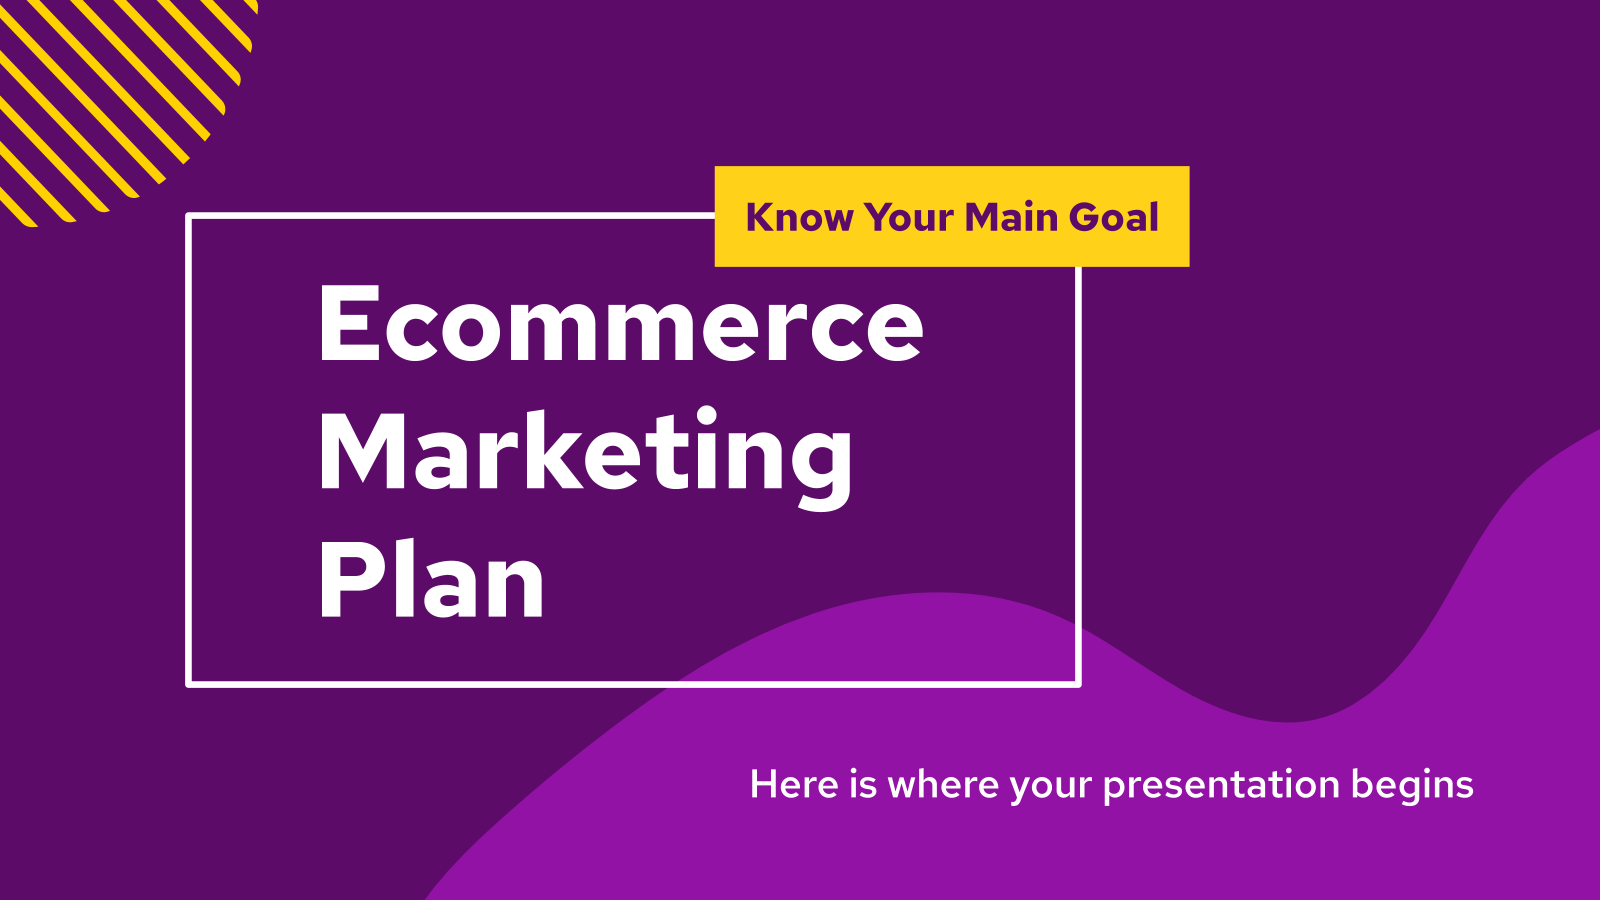 Ecommerce Marketing Plan presentation template